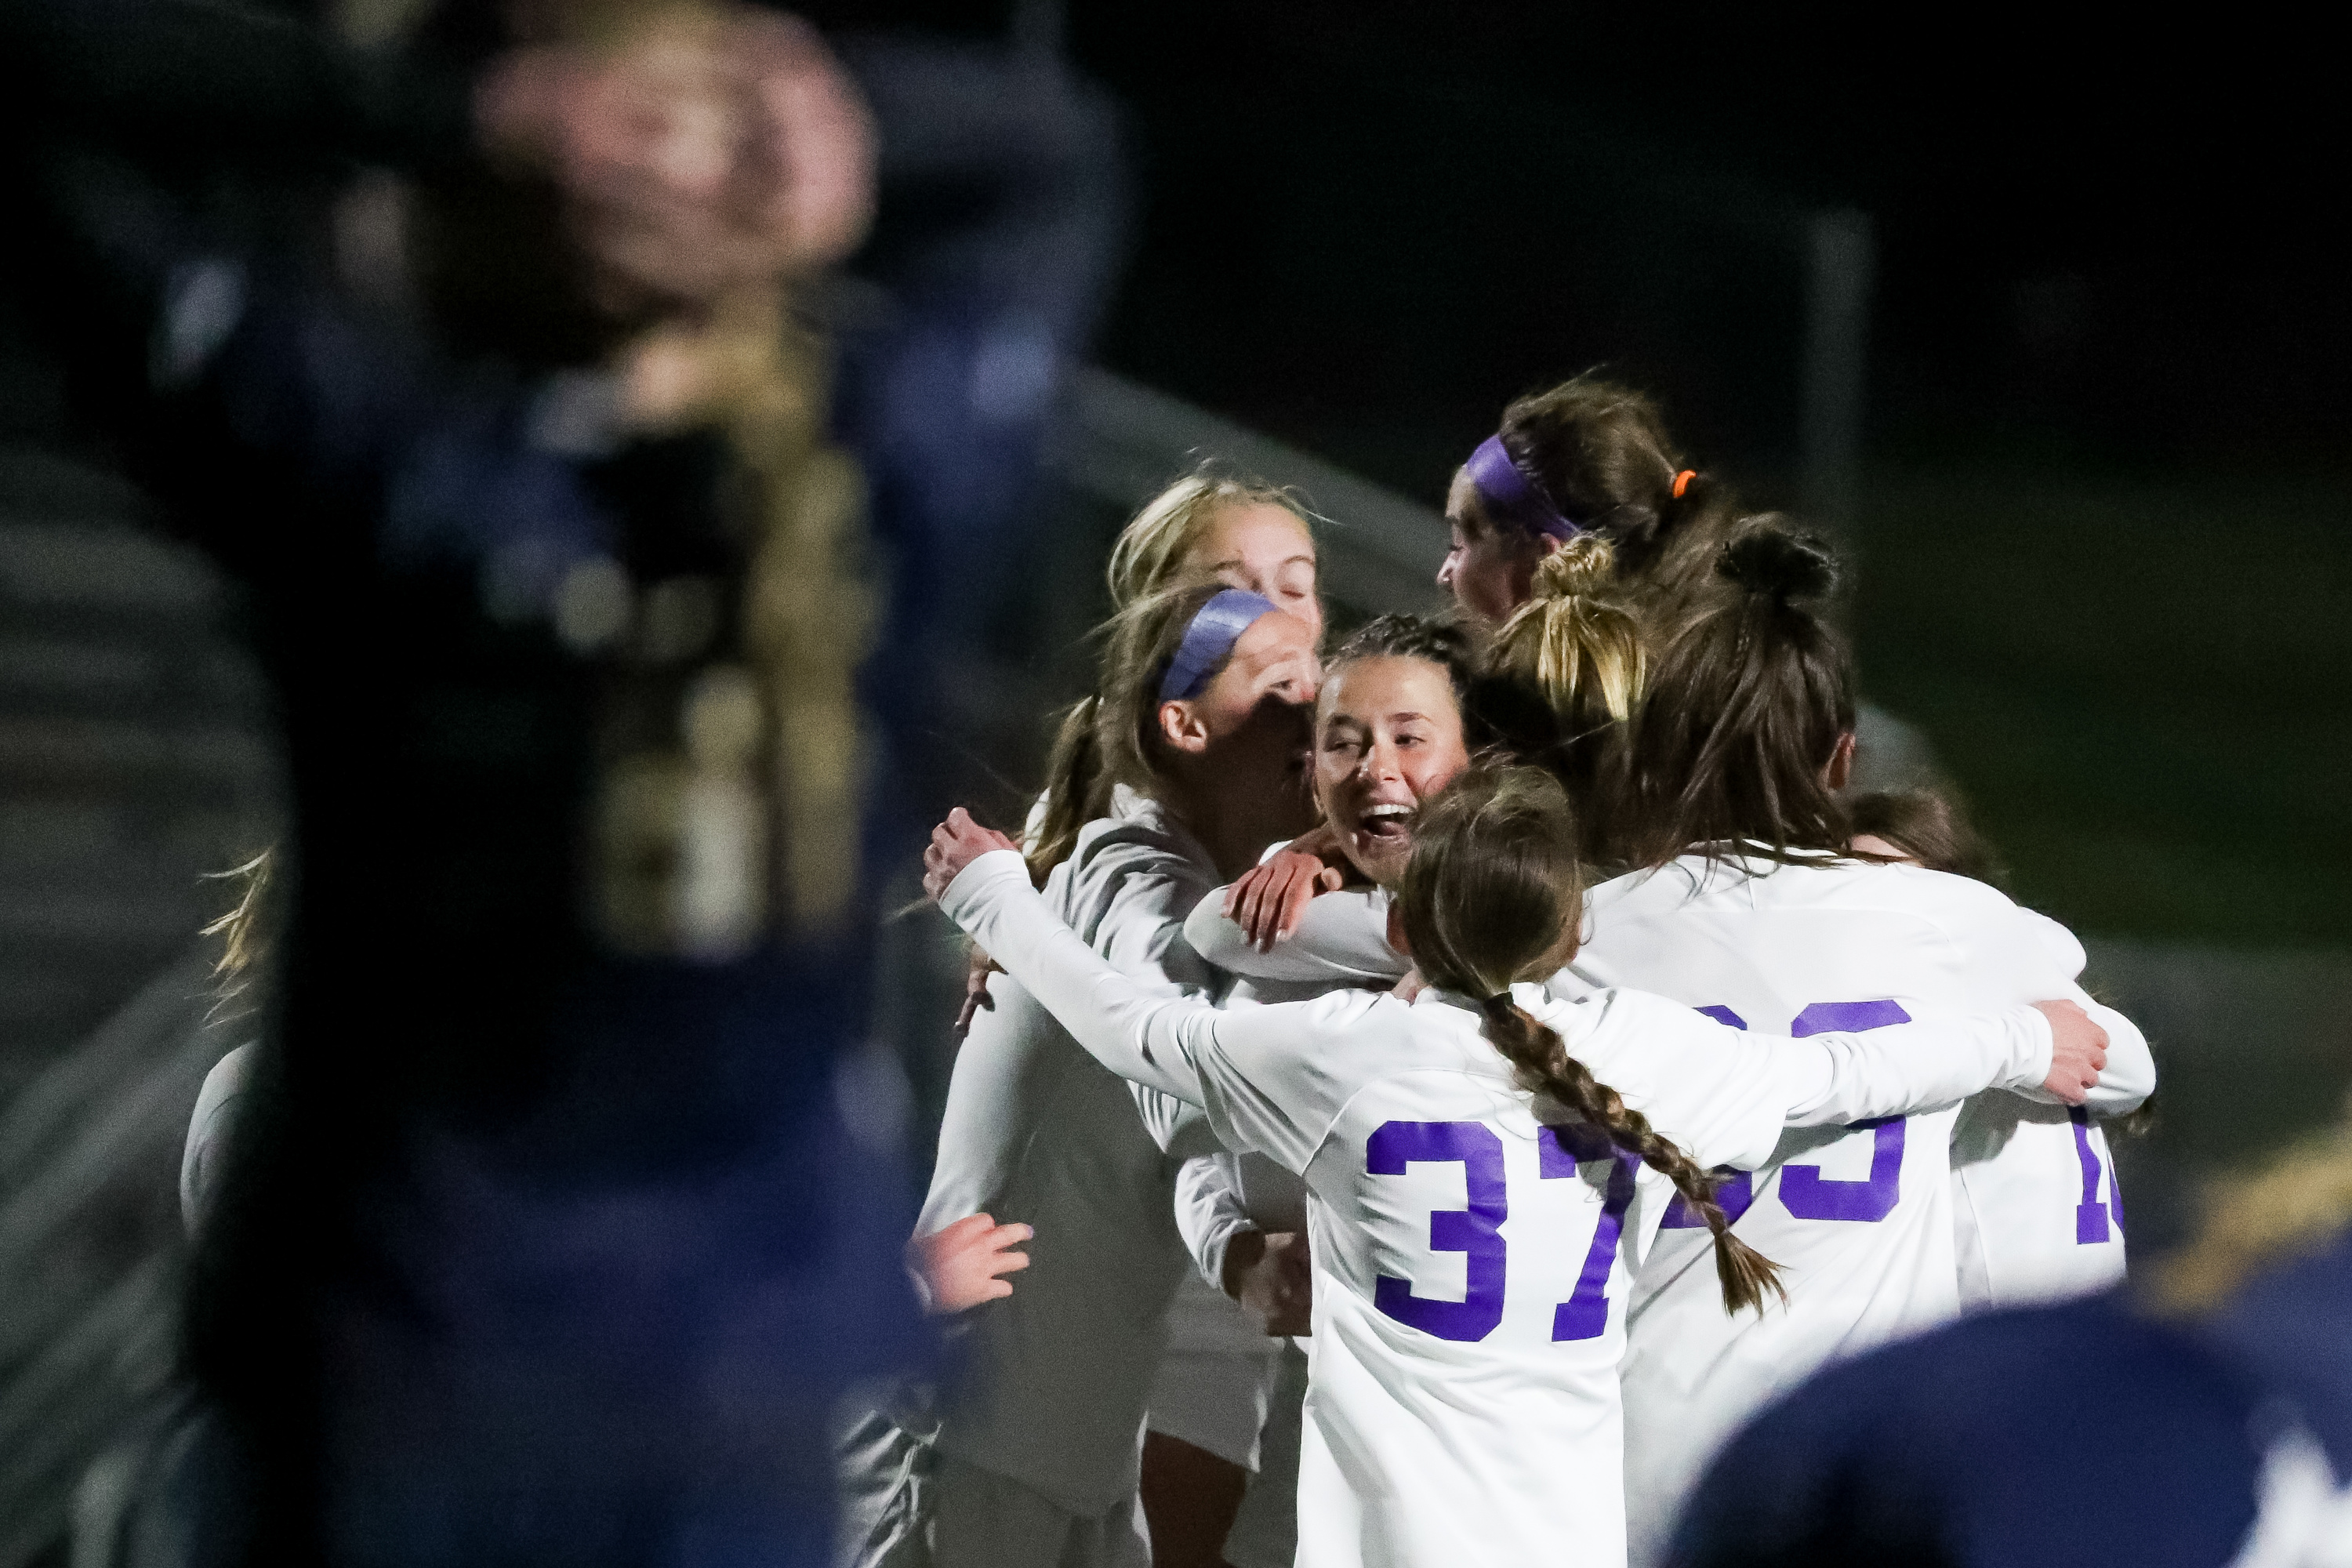 Lehi players celebrate their win over Bonneville in a 5A girls soccer semifinal game at Juan Diego